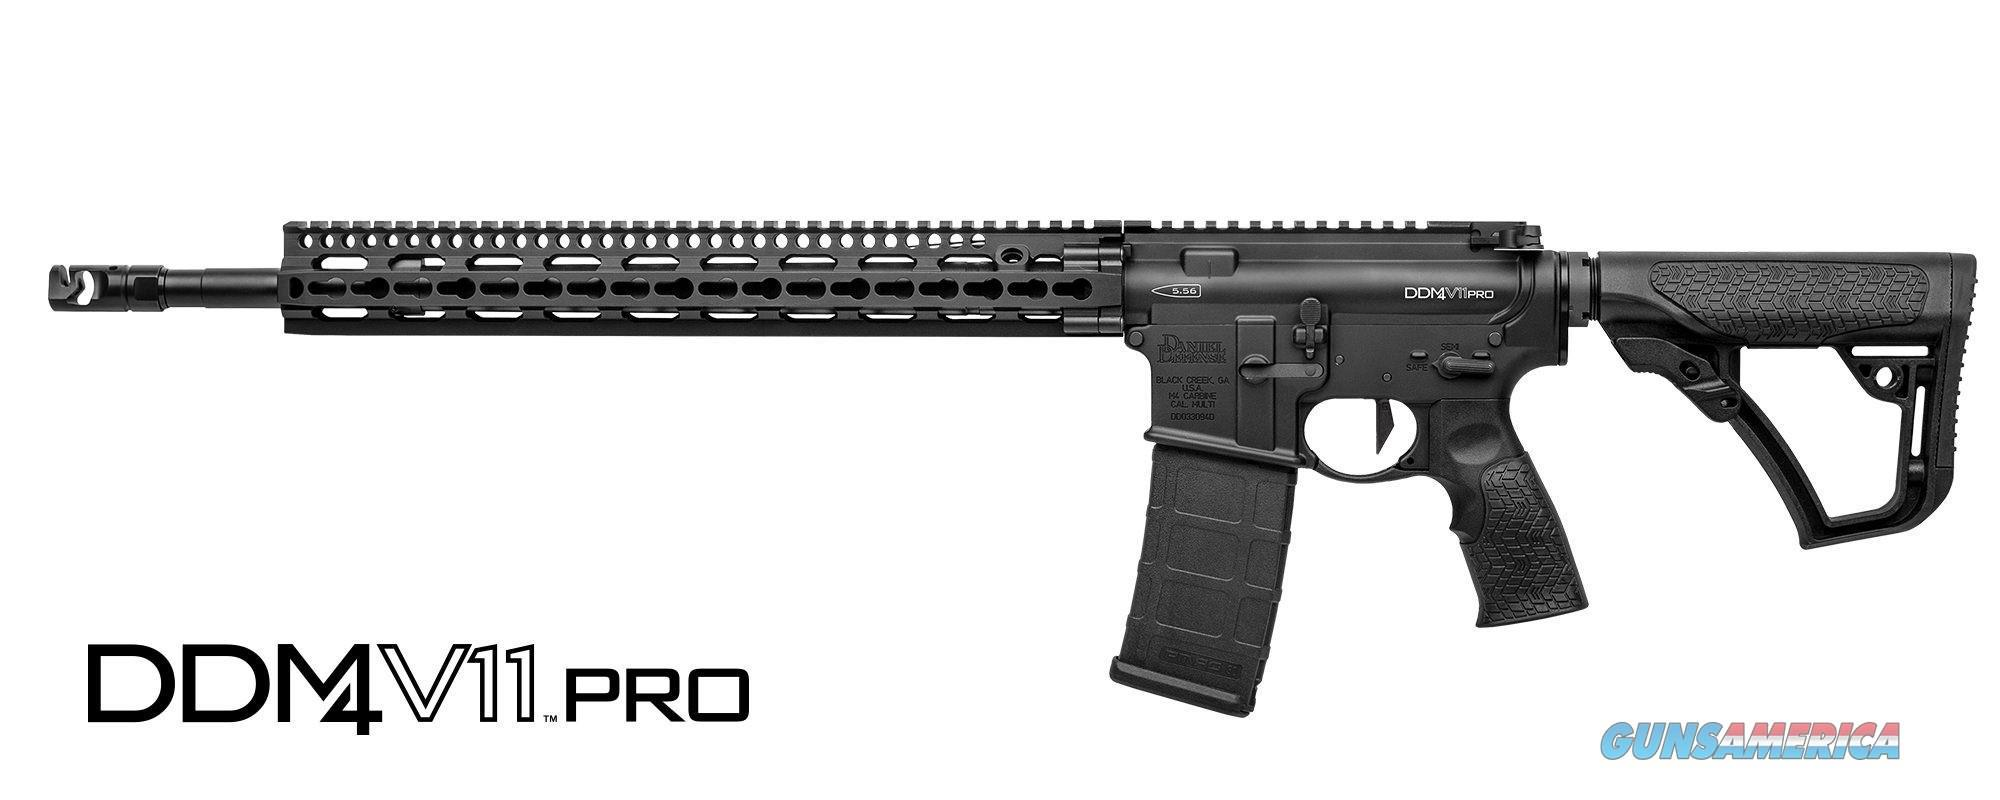 Daniel Defense 02-151-12033-047 DDM4 V11 Pro AR-15 Rifle 5.56mm 18in 30rd Black  Guns > Rifles > Daniel Defense > Complete Rifles